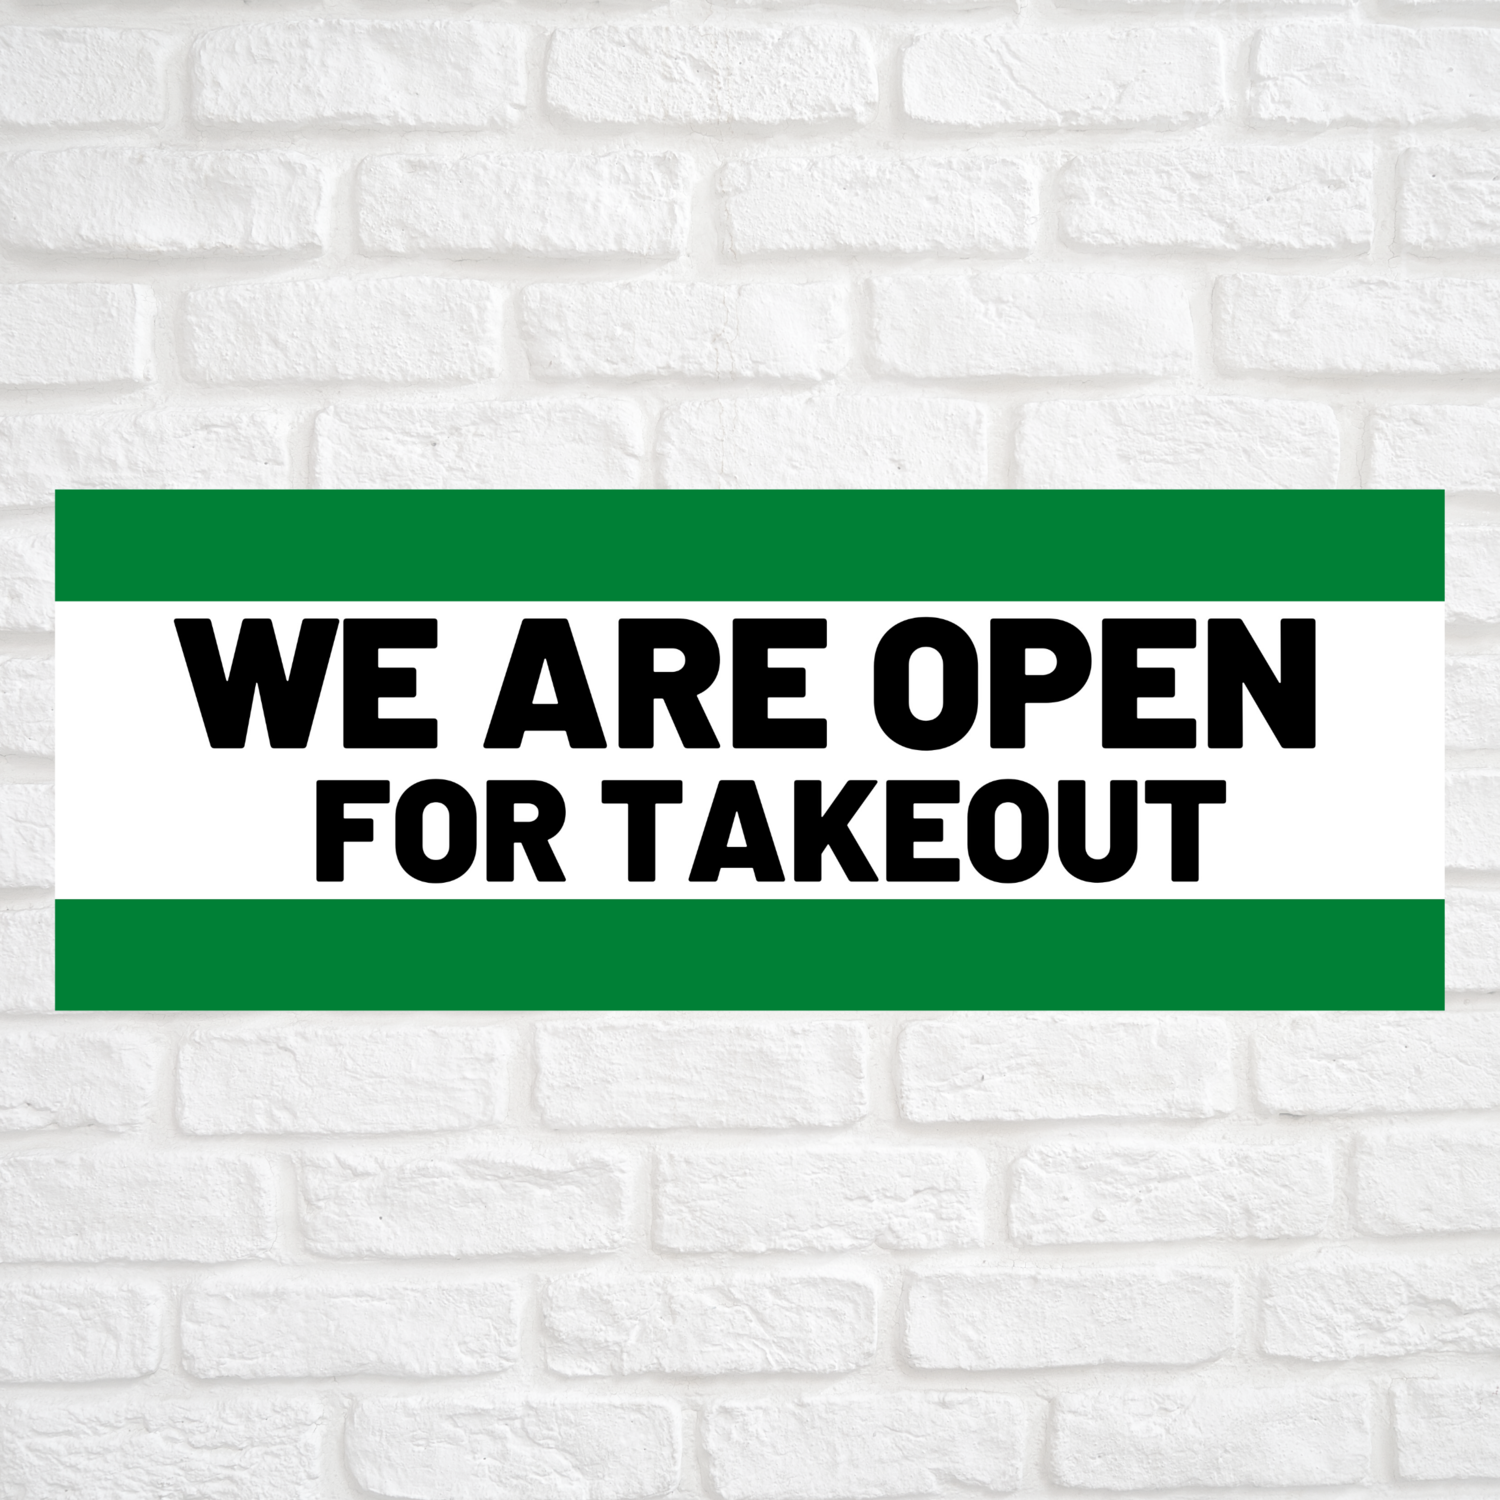 We Are Open For Takeout Green/Green